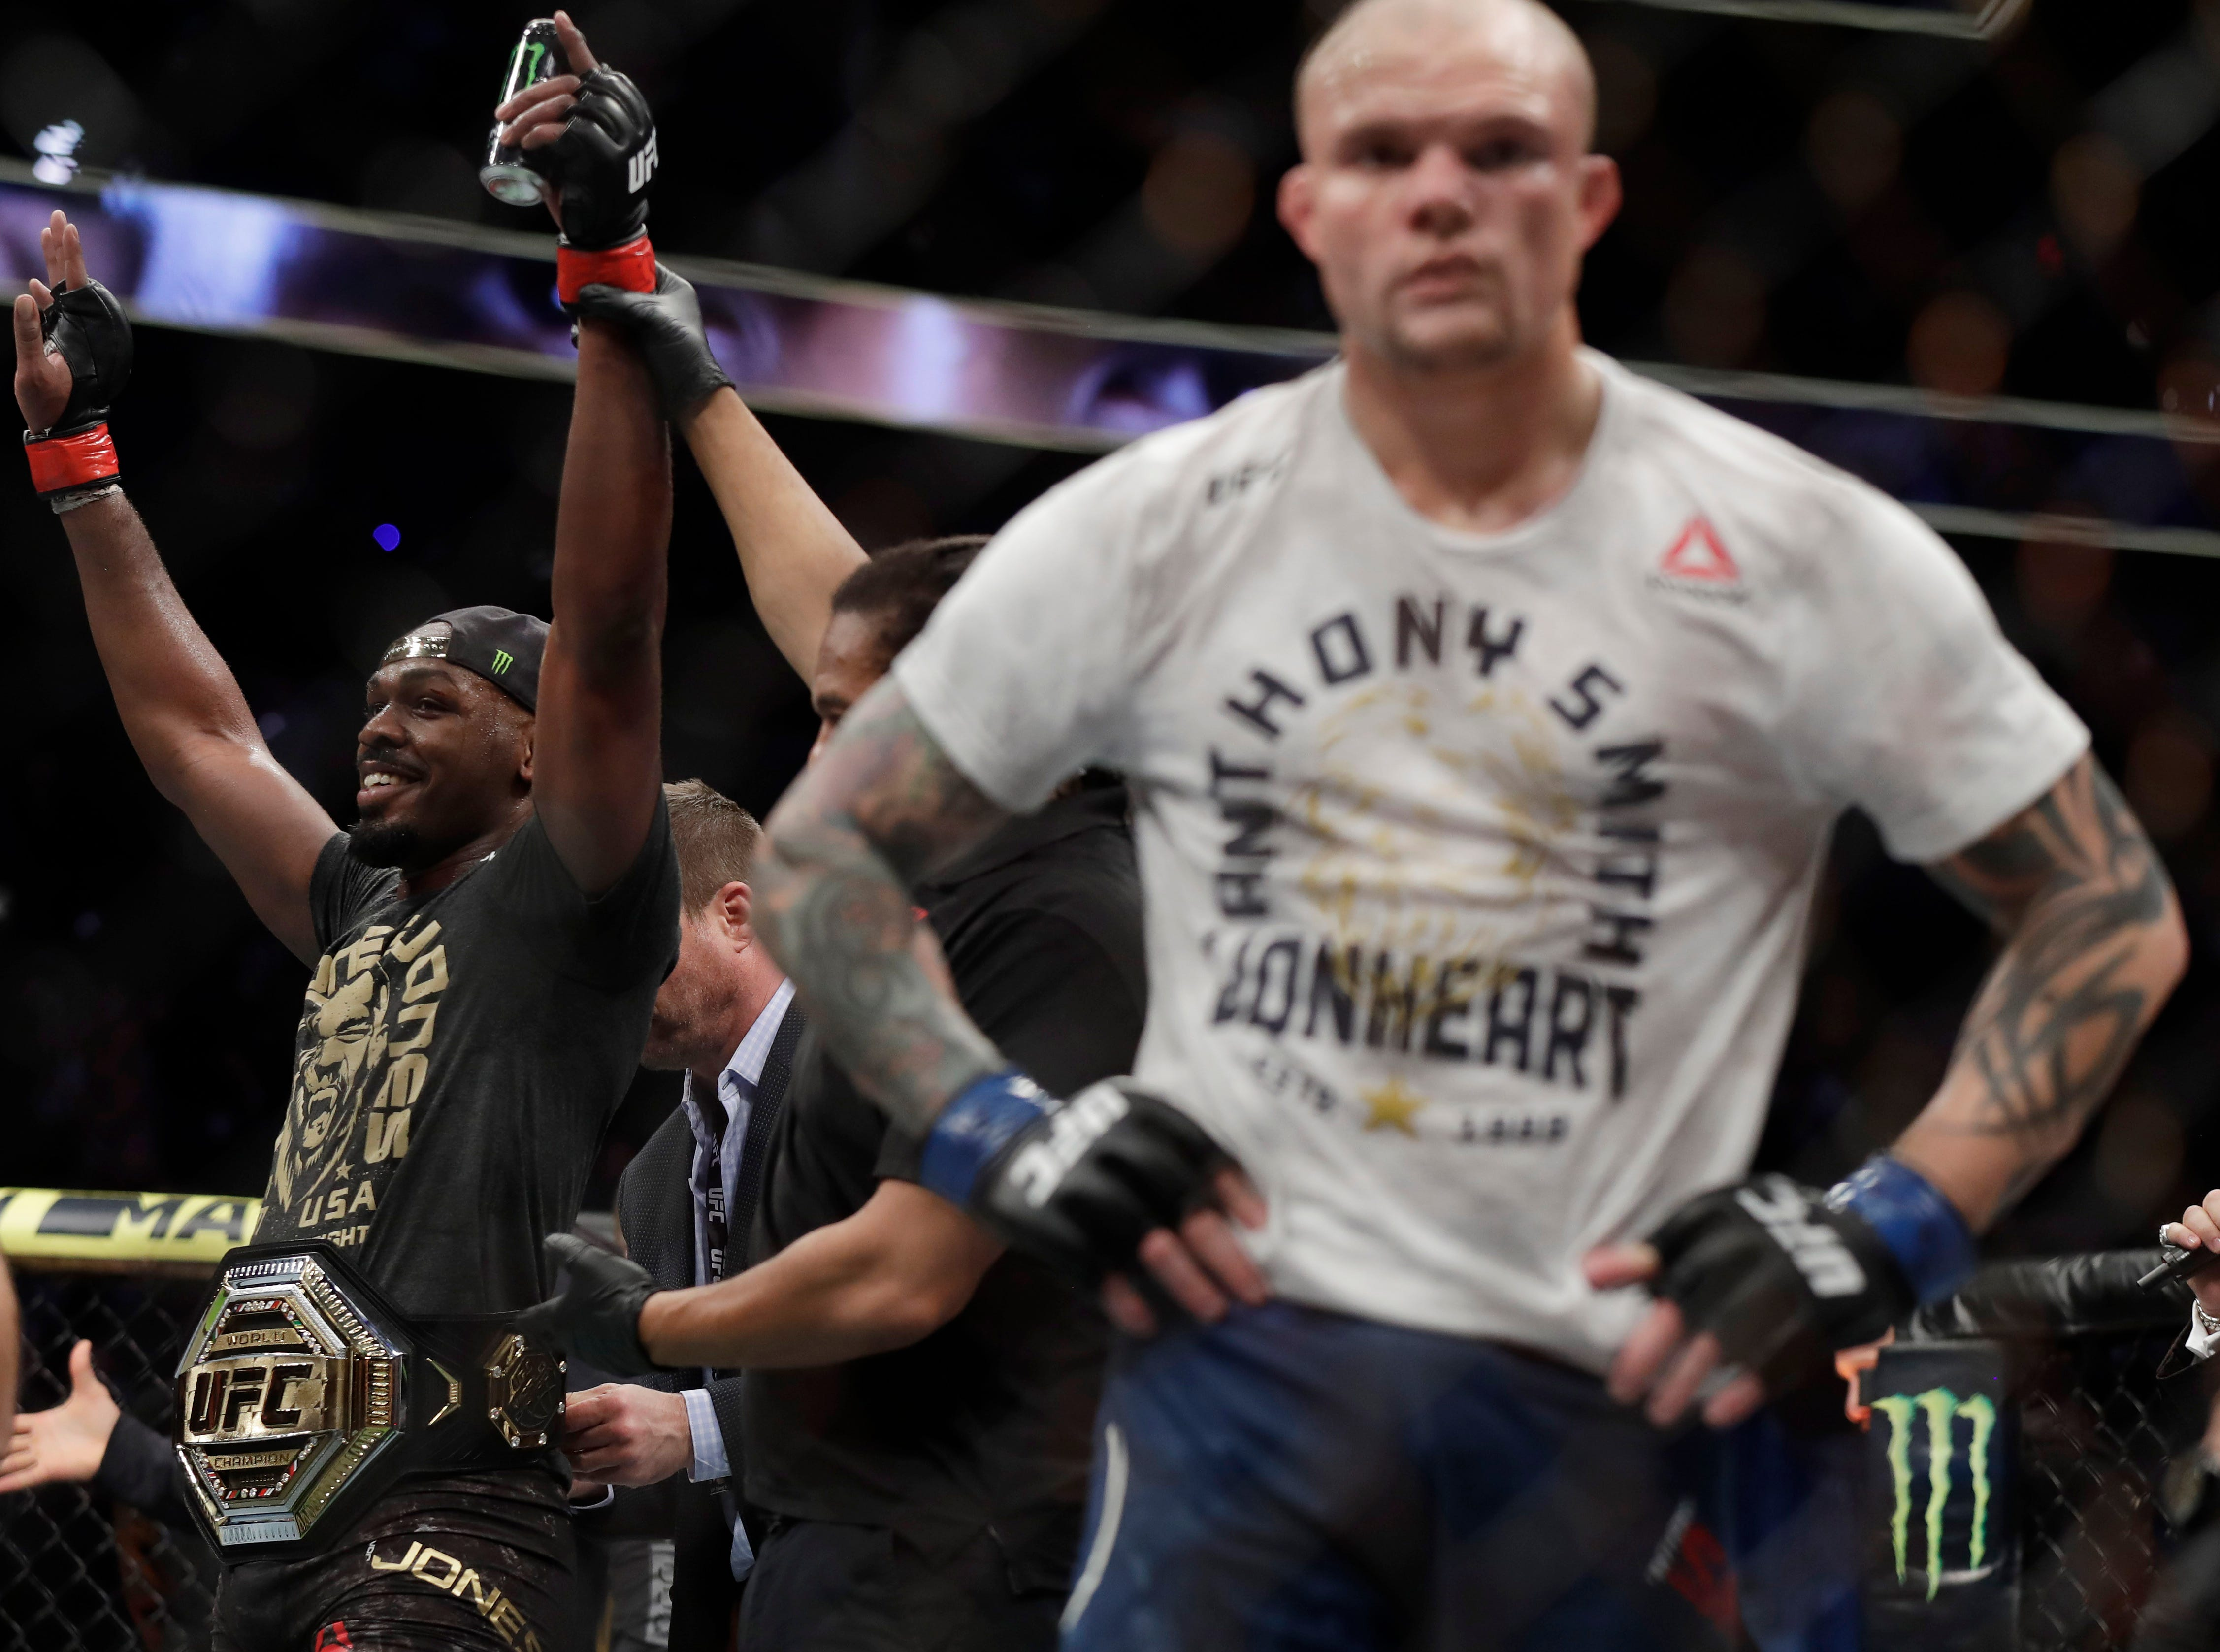 LAS VEGAS, NEVADA - MARCH 02: Jon Jones (L) celebrates after defeating Anthony Smith (R) following their light heavyweight title bout during UFC 235 at T-Mobile Arena on March 02, 2019 in Las Vegas, Nevada. Jones won by unanimous decision.  (Photo by Isaac Brekken/Getty Images)